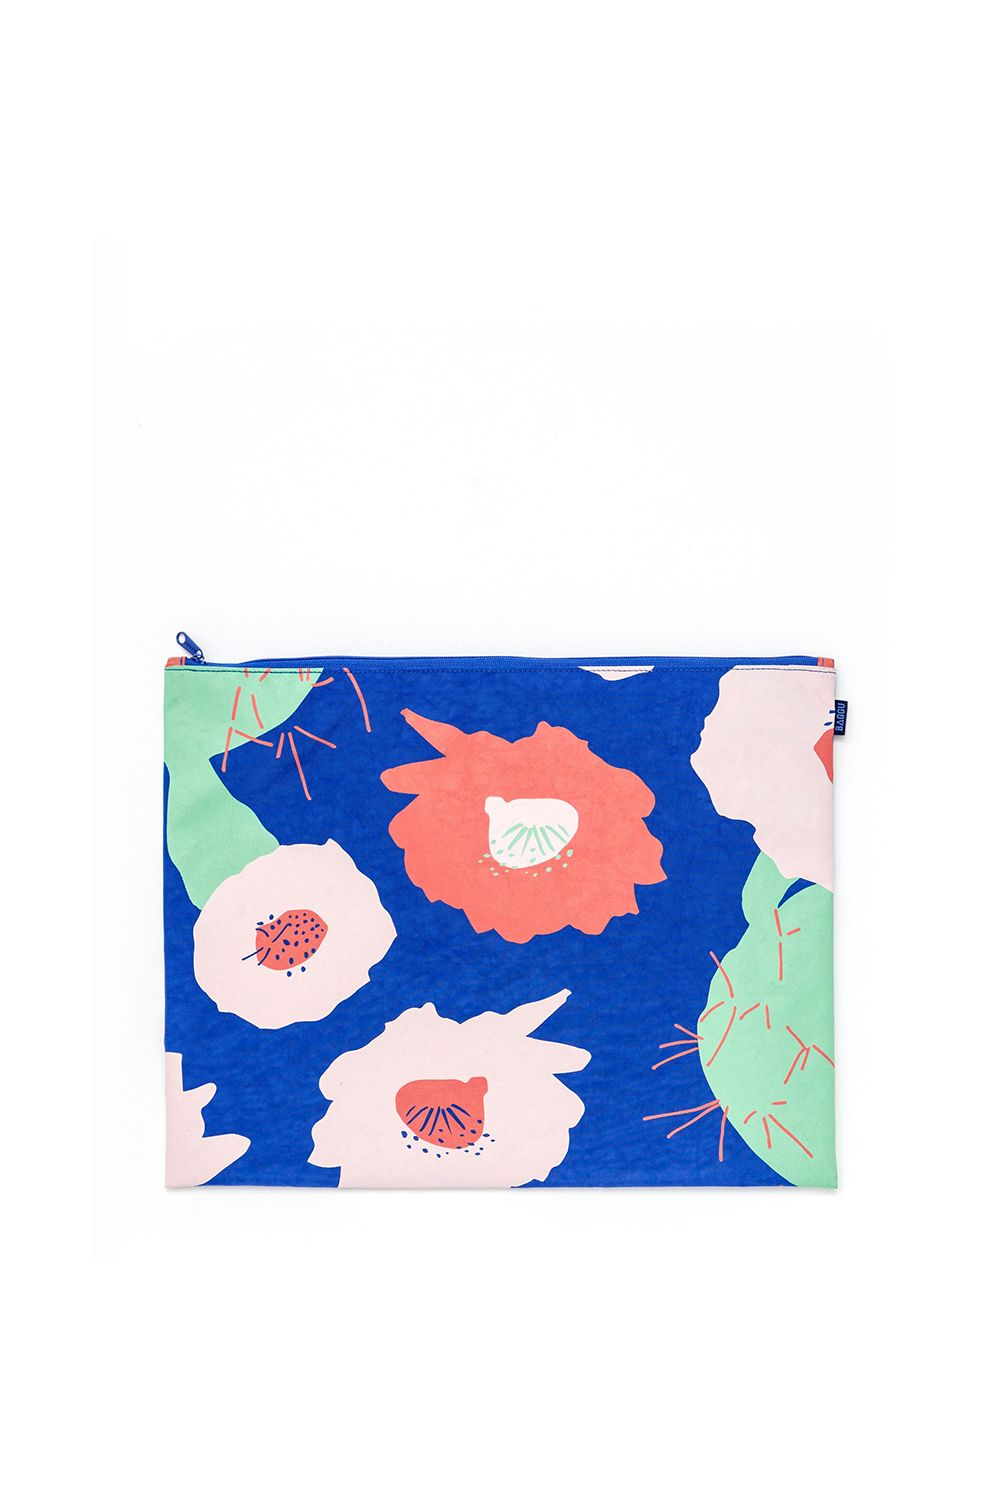 "<p>Since it's slightly larger than average, use this printed pouch to tote items like notebooks and toiletries on-the-go. Or, carry it sandwich style as a fold-over clutch with a summery dress.</p><p><strong>Baggu Large Flat Zip, $15&#x3B; <a href=""http://baggu.com/collections/clutches-pouches/products/large-flat-zip-cobalt-cactus-flower?variant=13869529543"">baggu.com</a>.</strong></p>"